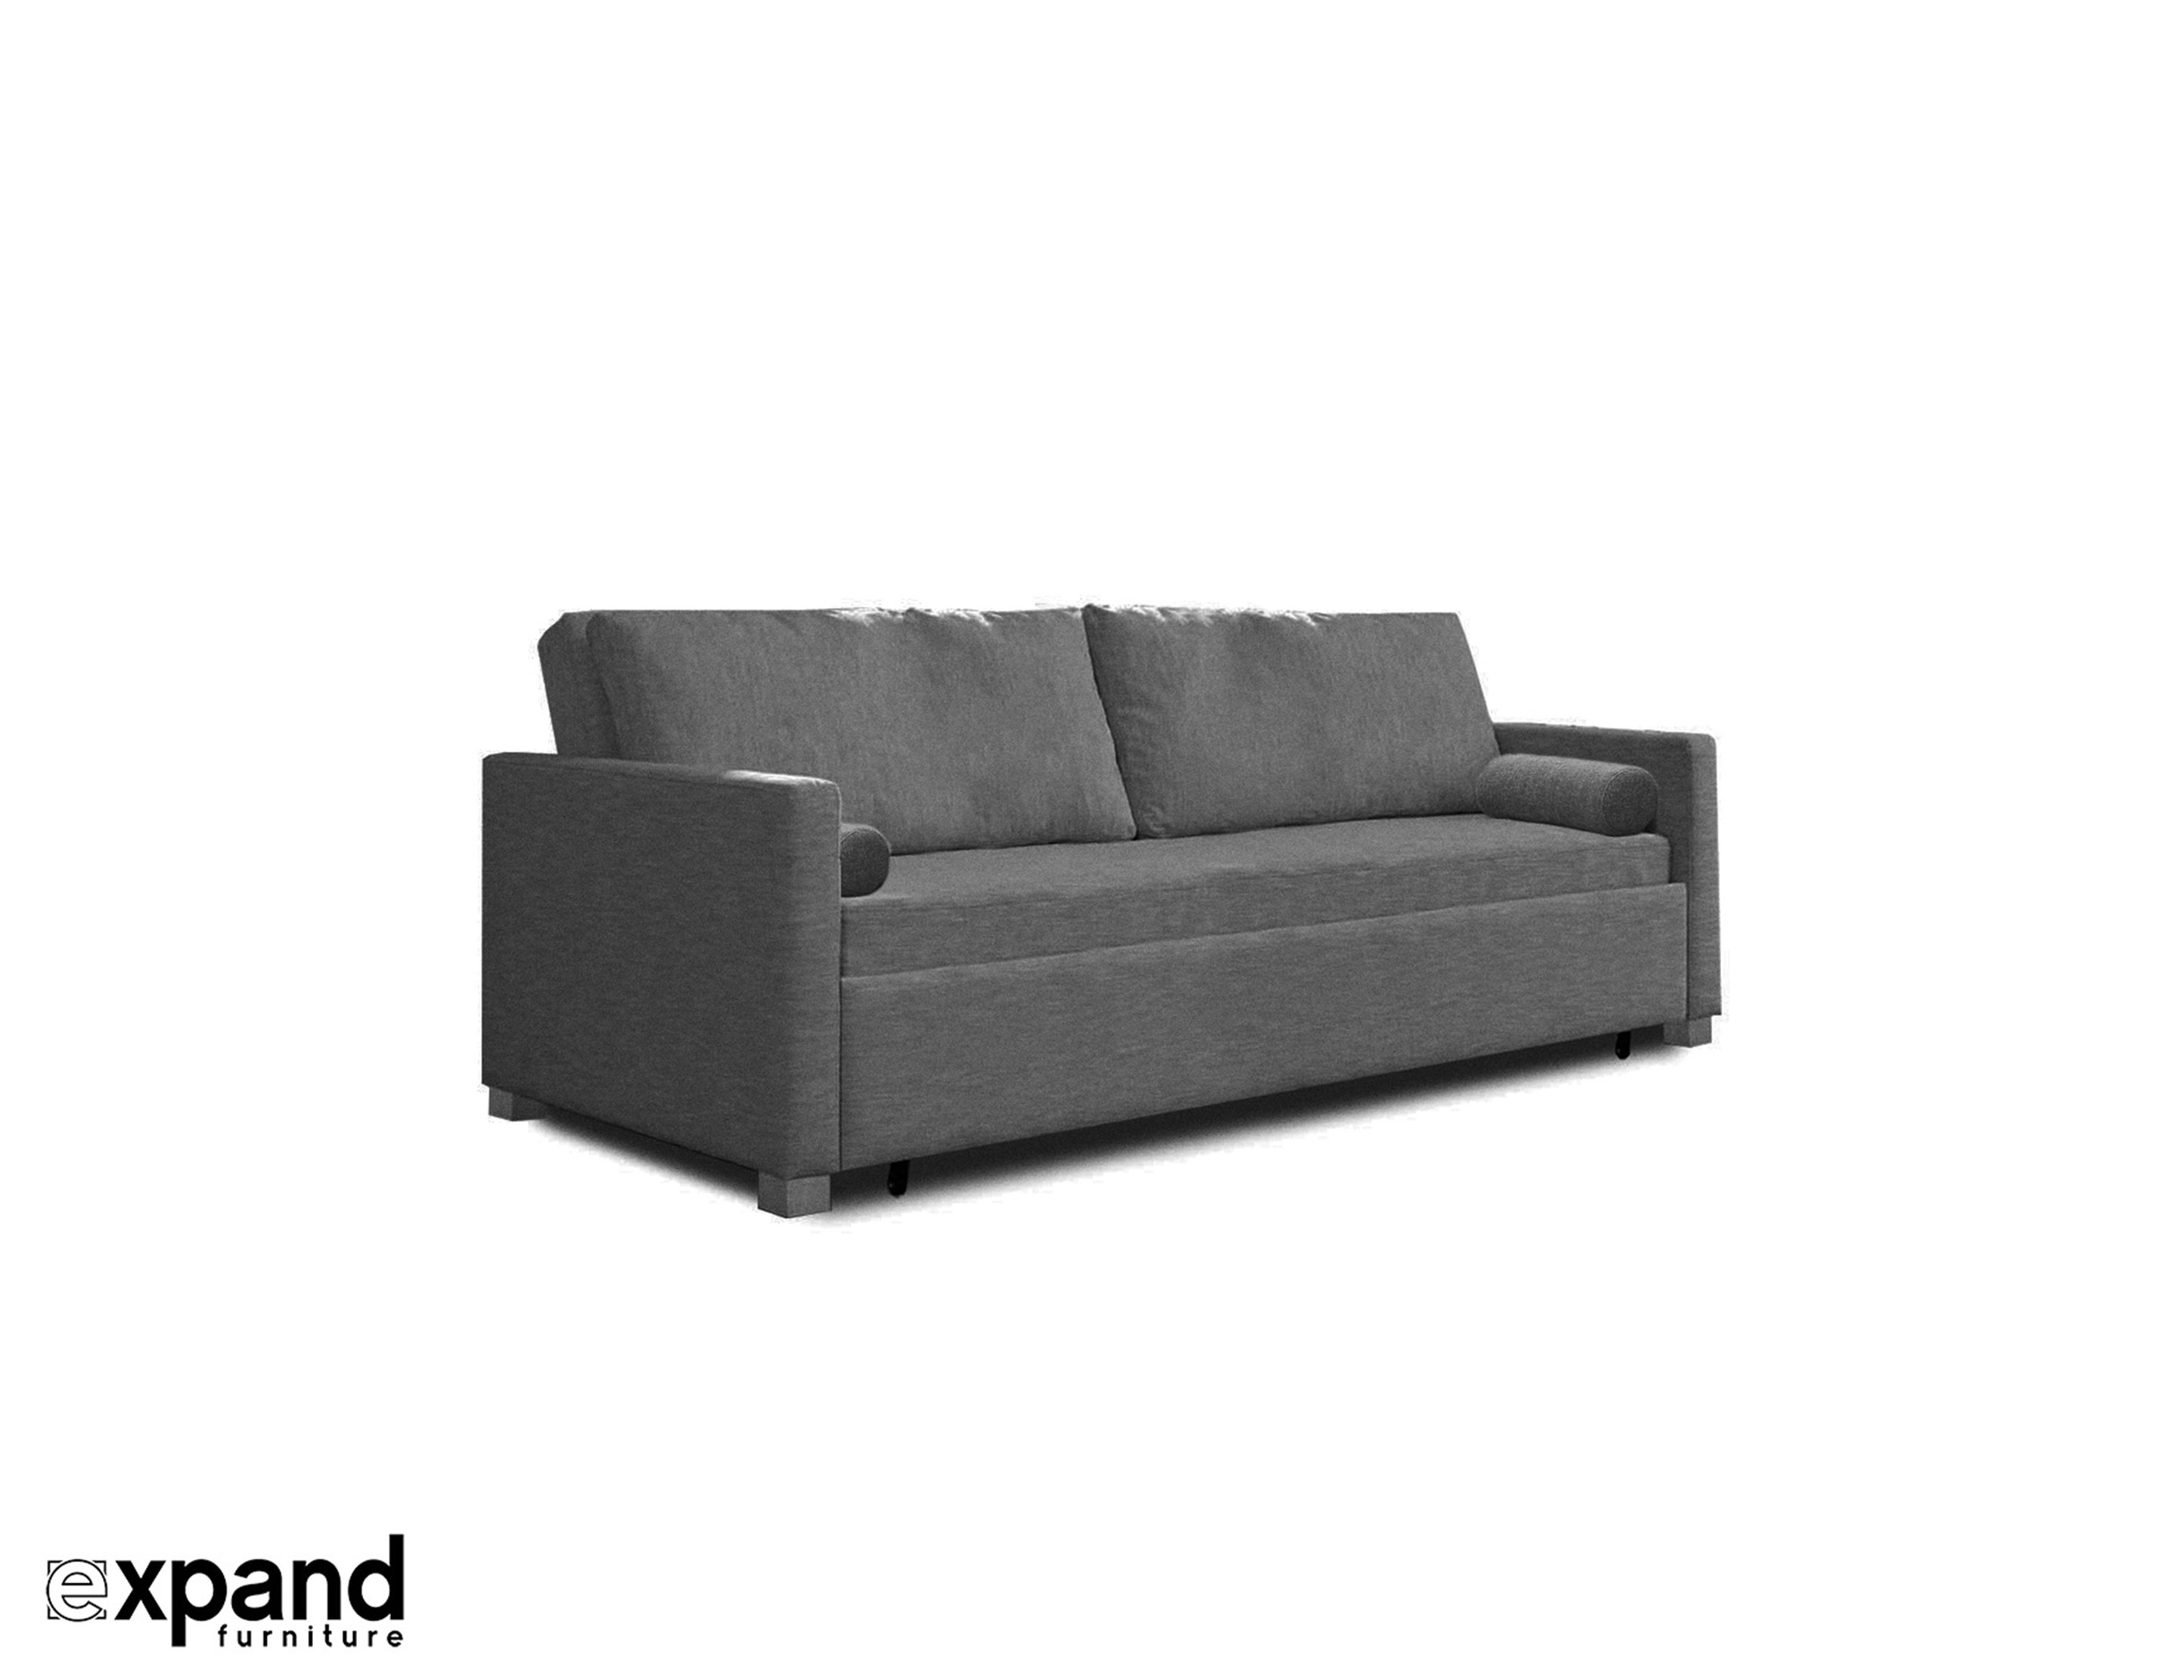 King furniture sofa bed refil sofa for Liquidation sofa sectionnel